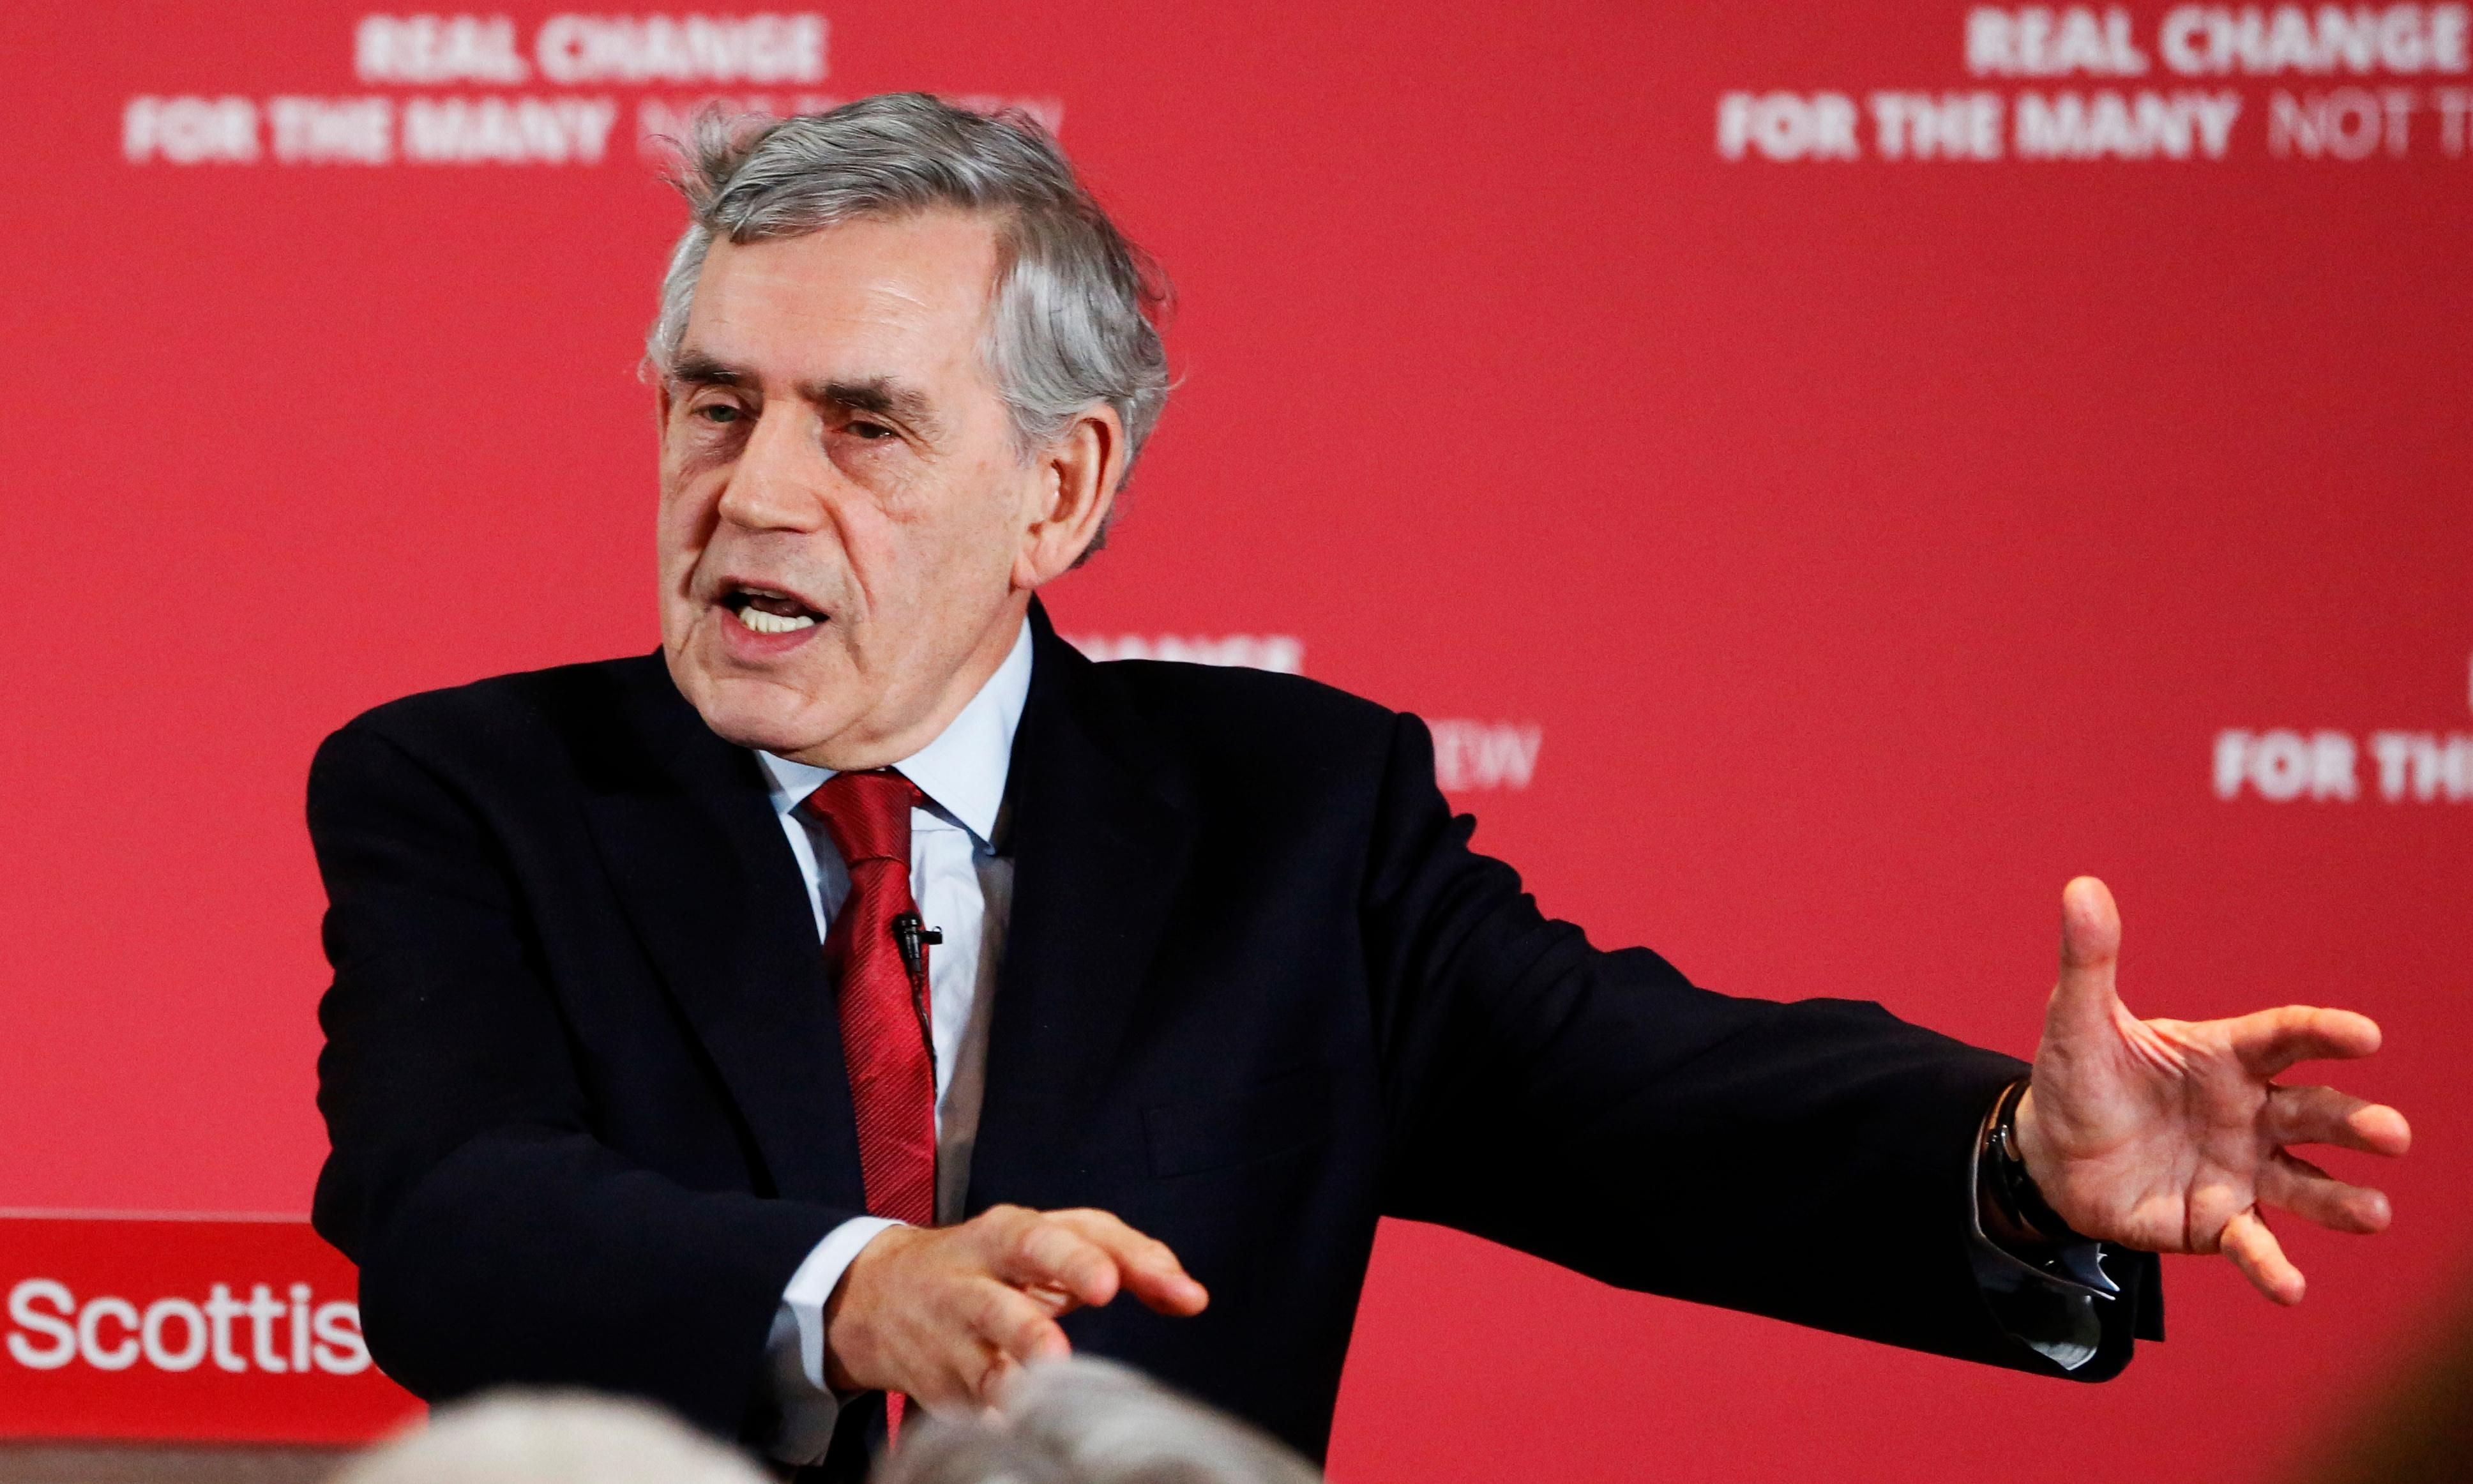 Gordon Brown wants to save Britain. It might be too late for that